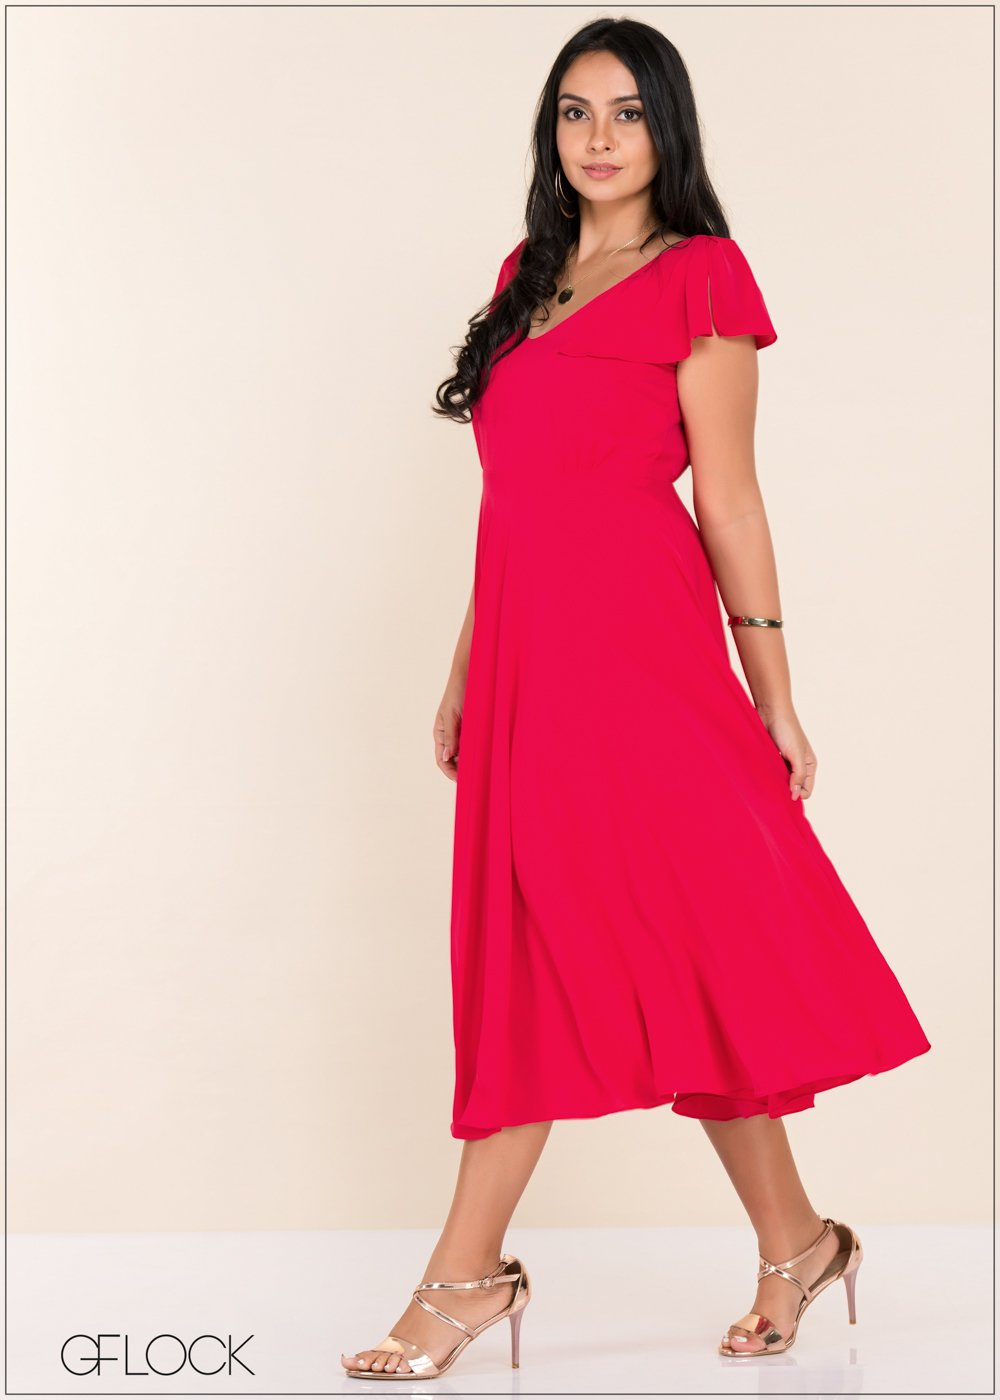 GFLOCK - [product_sku] - Women_Dresses - High Low Flared Sleeve Dress